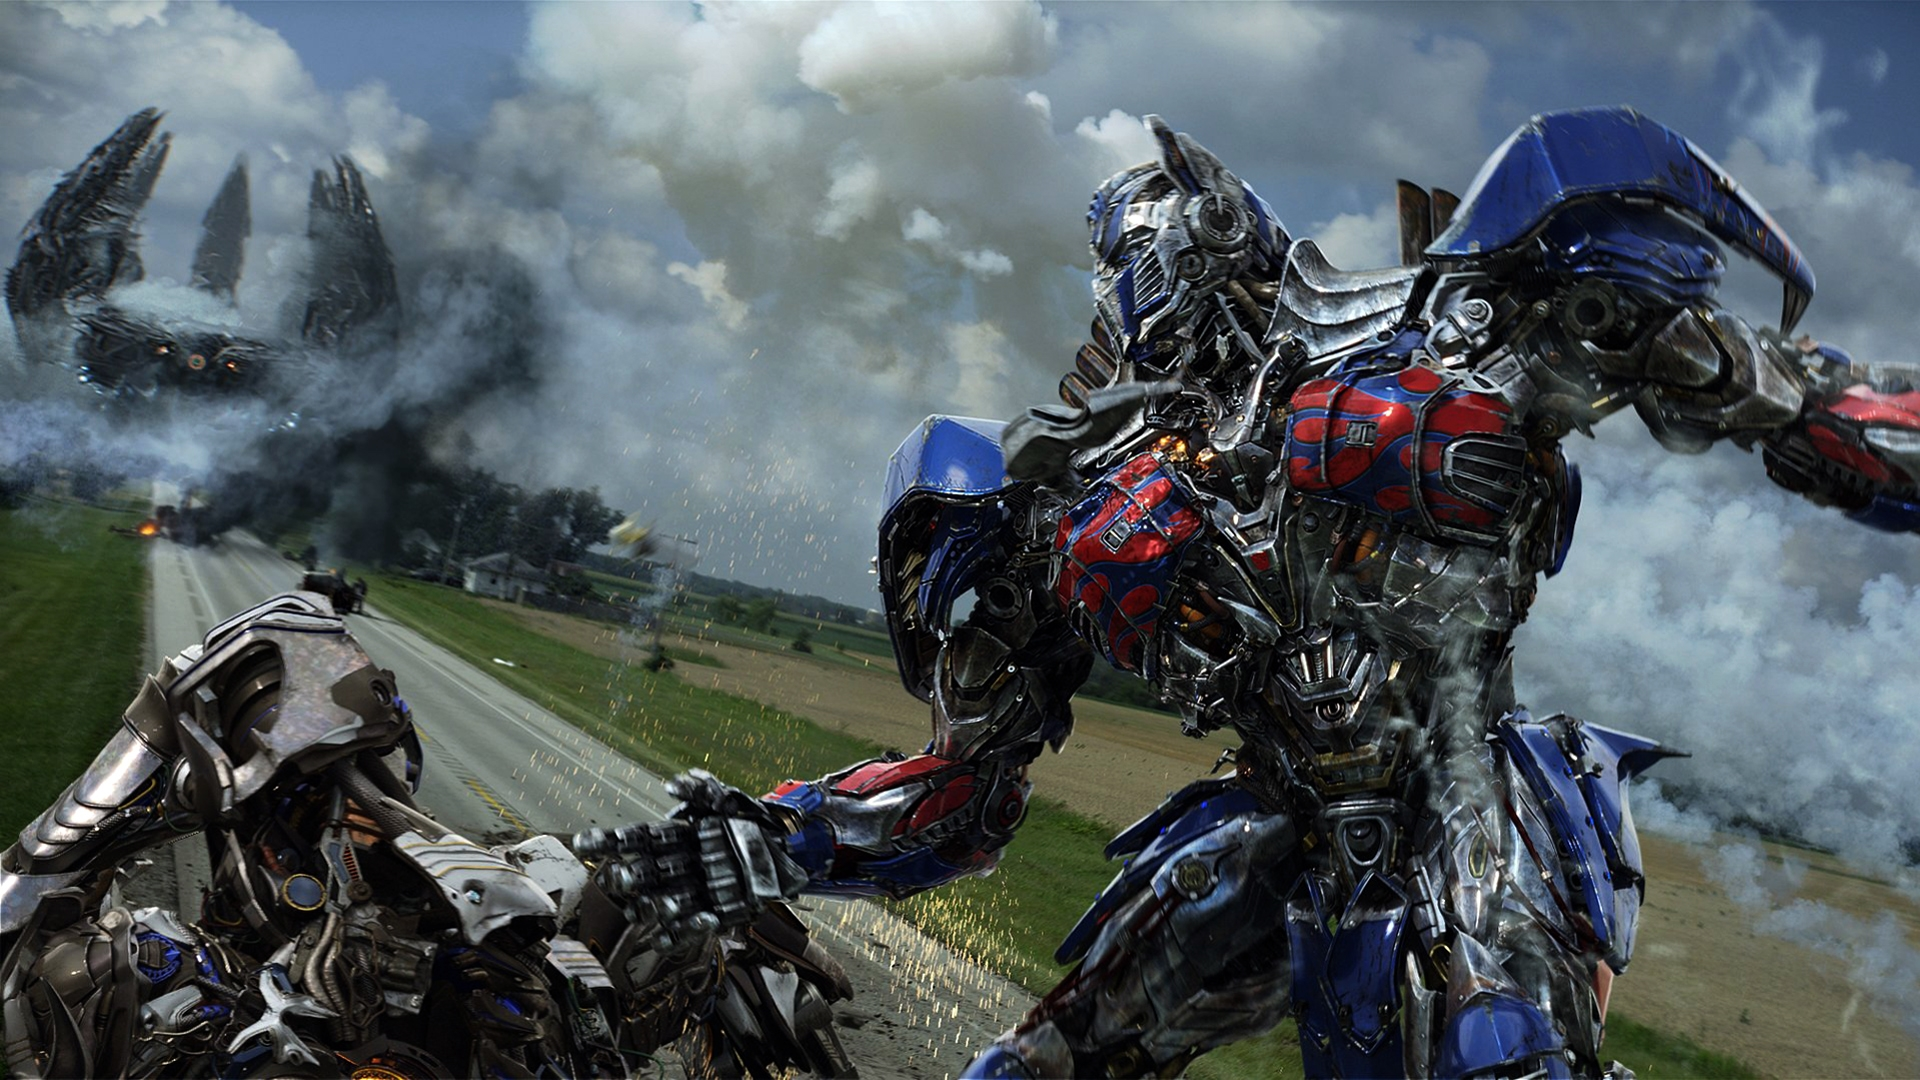 optimus prime fighting transformer 4 movie